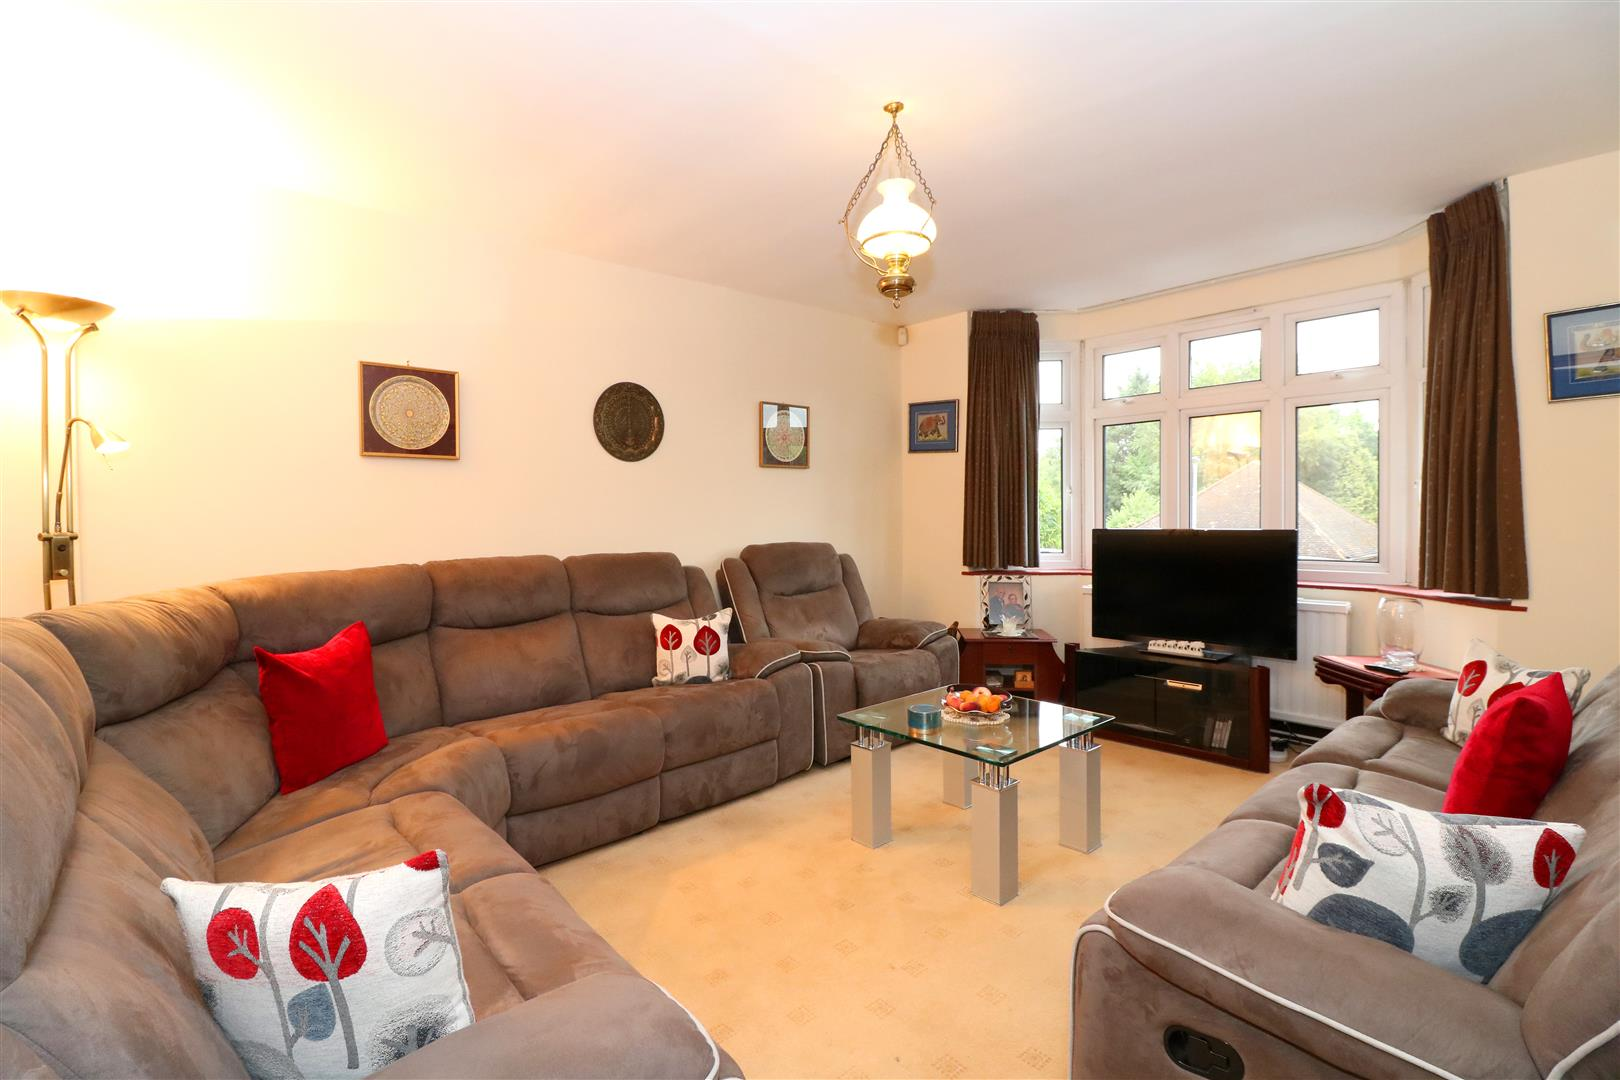 4 bed House for sale in Links Drive, Radlett - (Property Image 1)